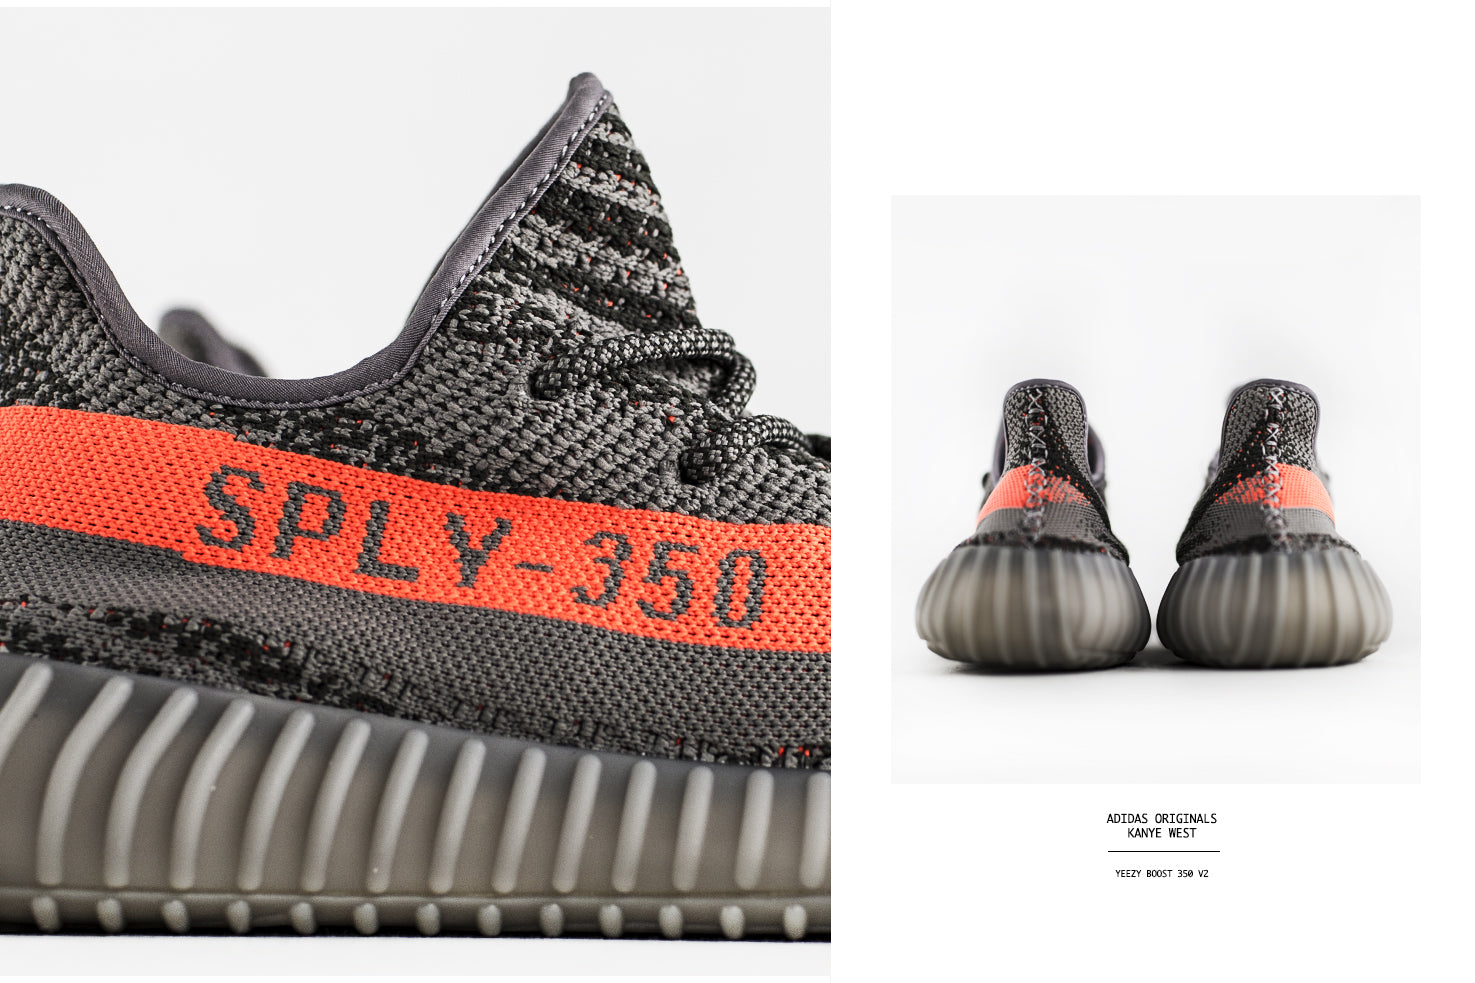 new product fd0d6 c6aec BLENDS | adidas x Kanye West Yeezy Boost 350 V2 Feature | BLENDS